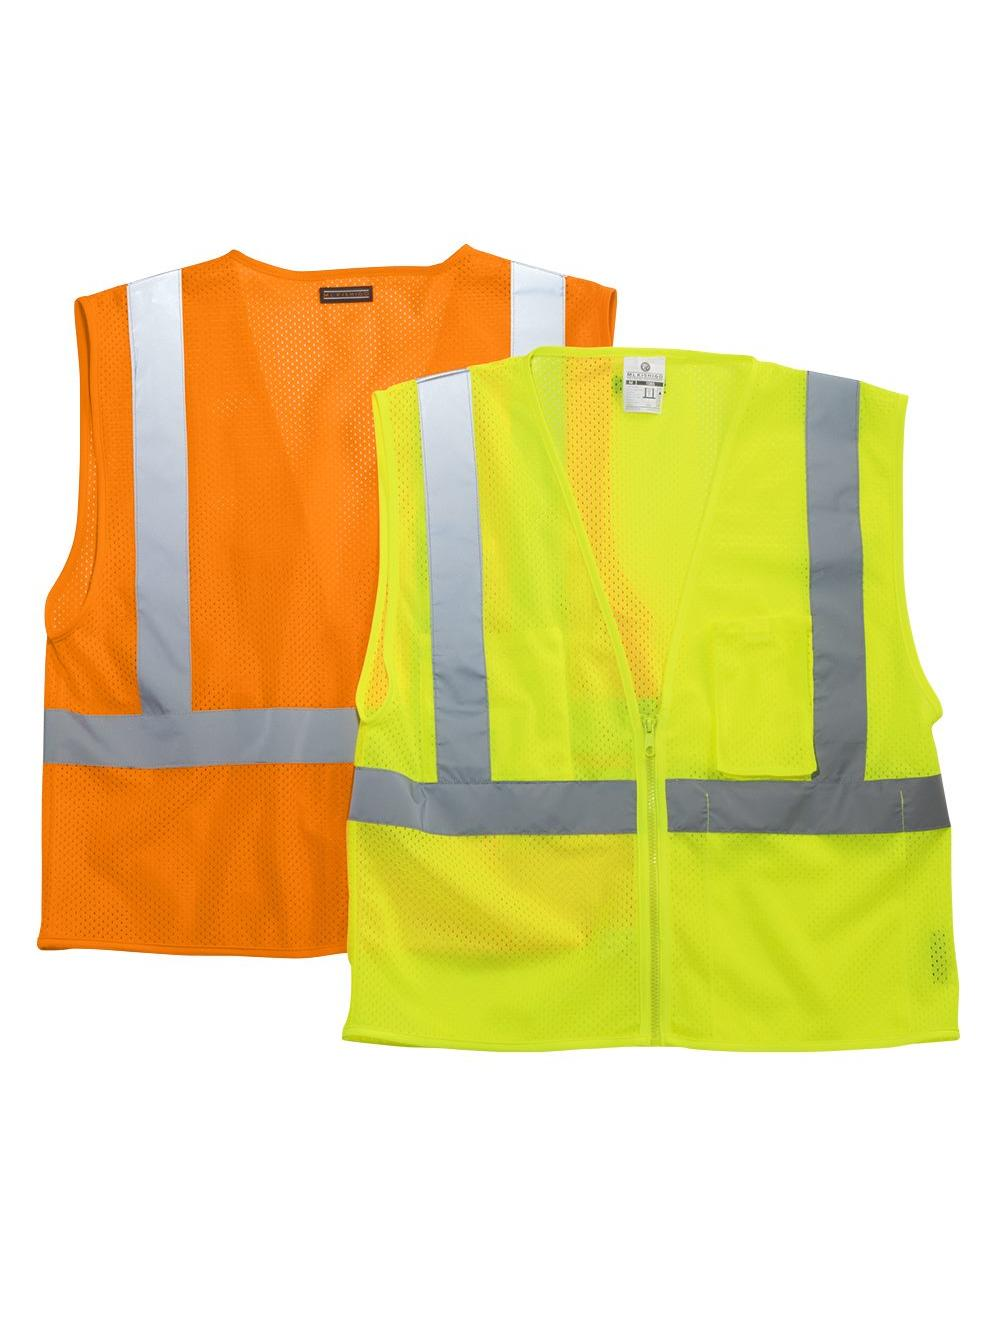 ML Kishigo Workwear Ultra-Cool™ Mesh Vest with Pockets